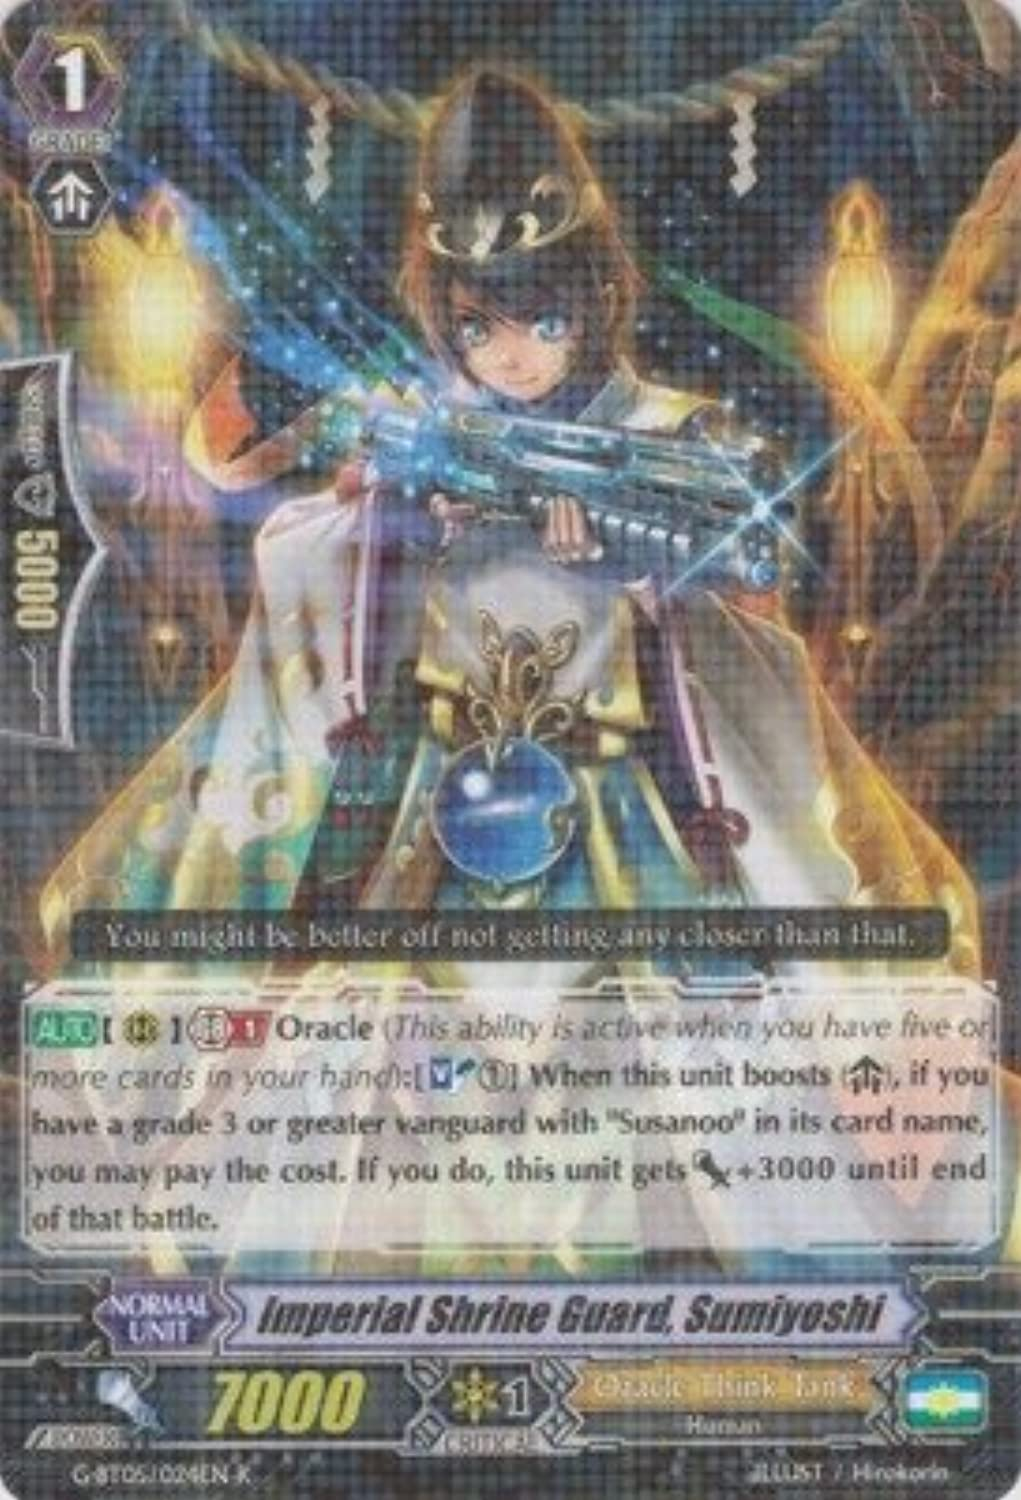 Cardfight   Vanguard TCG  Imperial Shrine Guard, Sumiyoshi (GBT05 024EN)  G Booster Set 5  Moonlit Dragonfang by Cardfight   Vanguard TCG